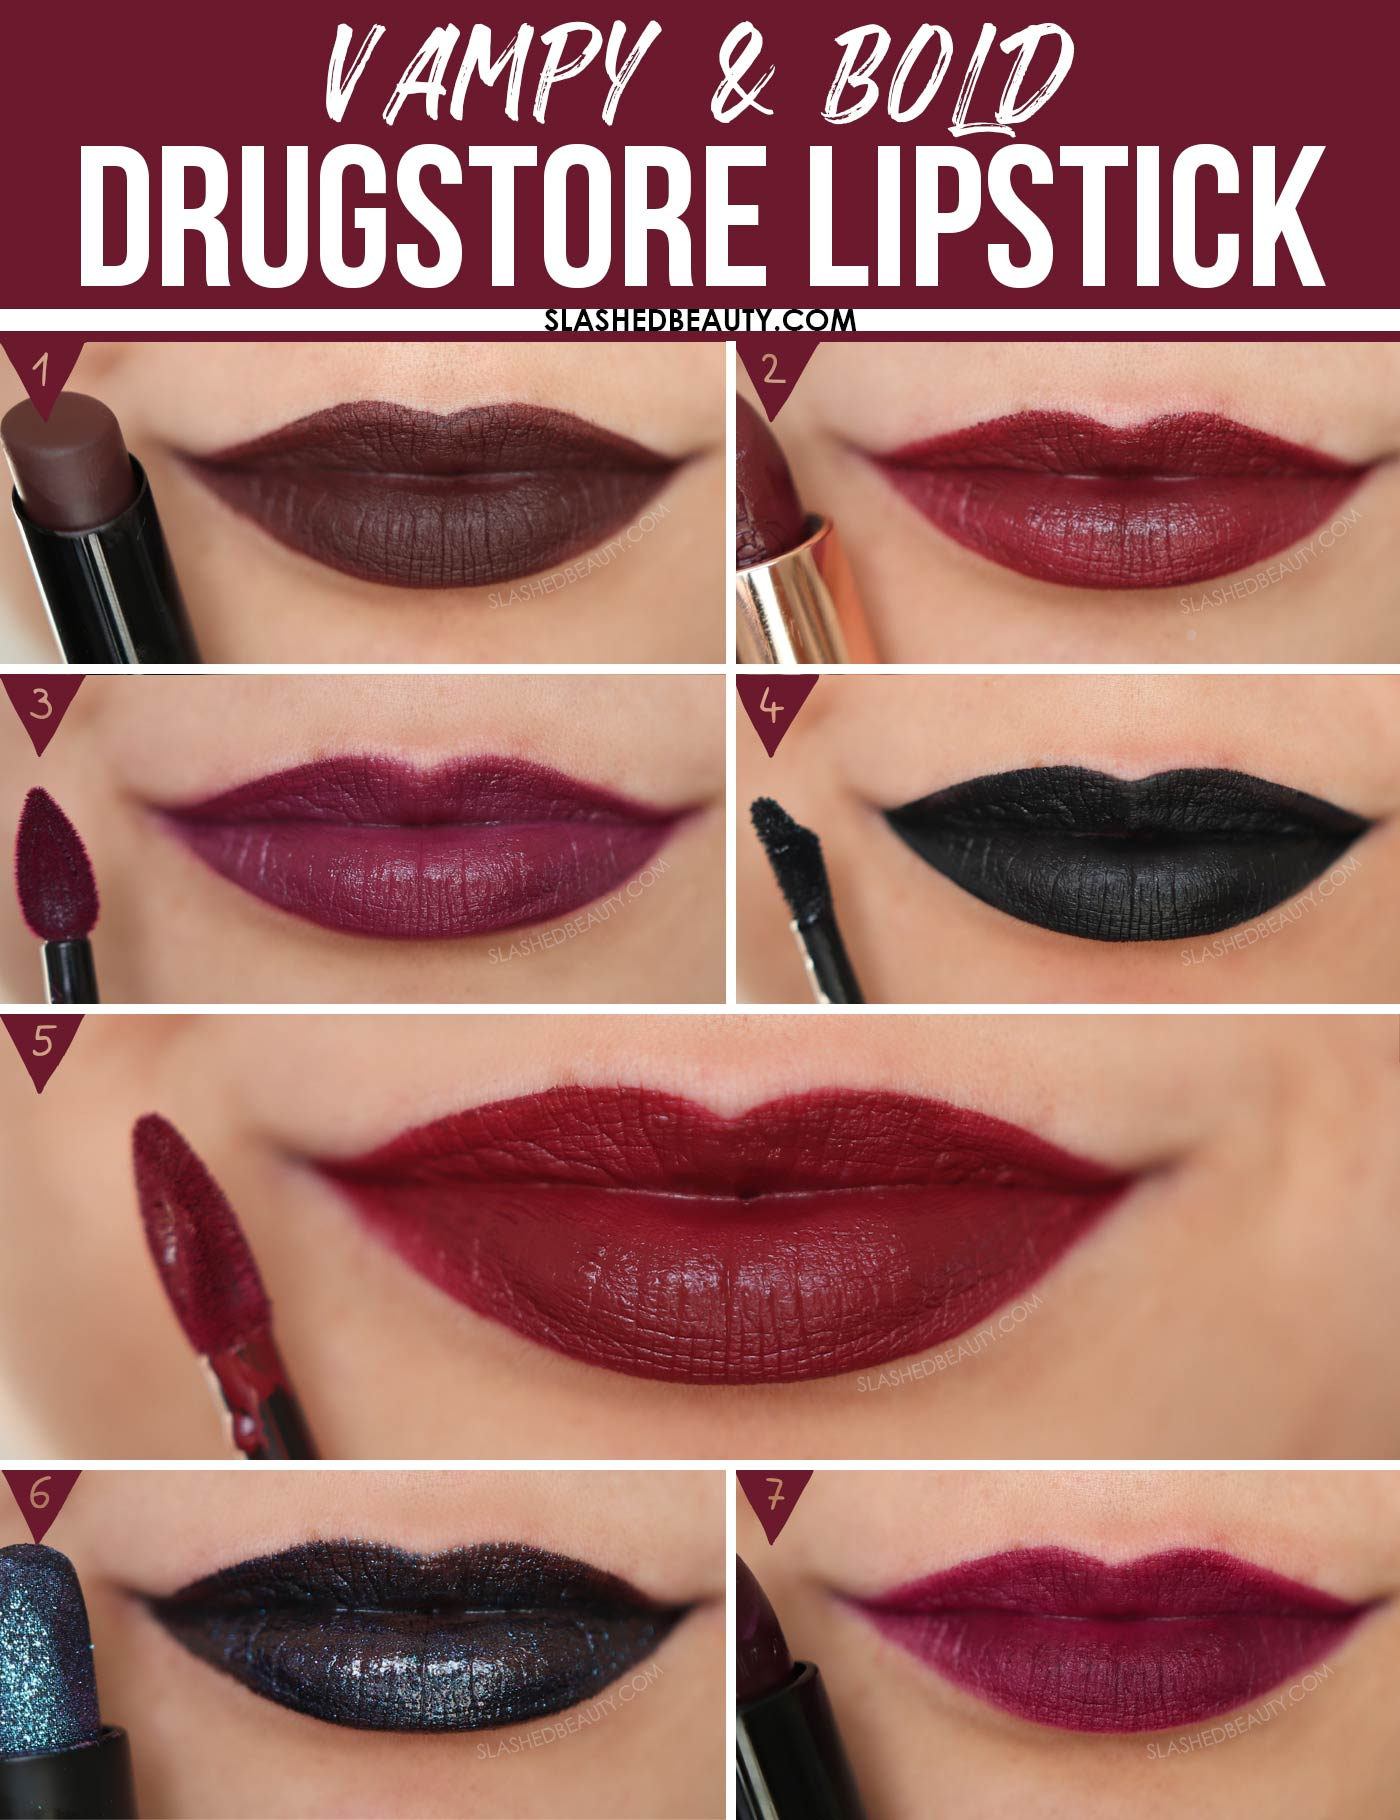 7 Vampy & Bold Drugstore Lipsticks for Fall | Deep Drugstore Lipstick Swatches | Slashed Beauty